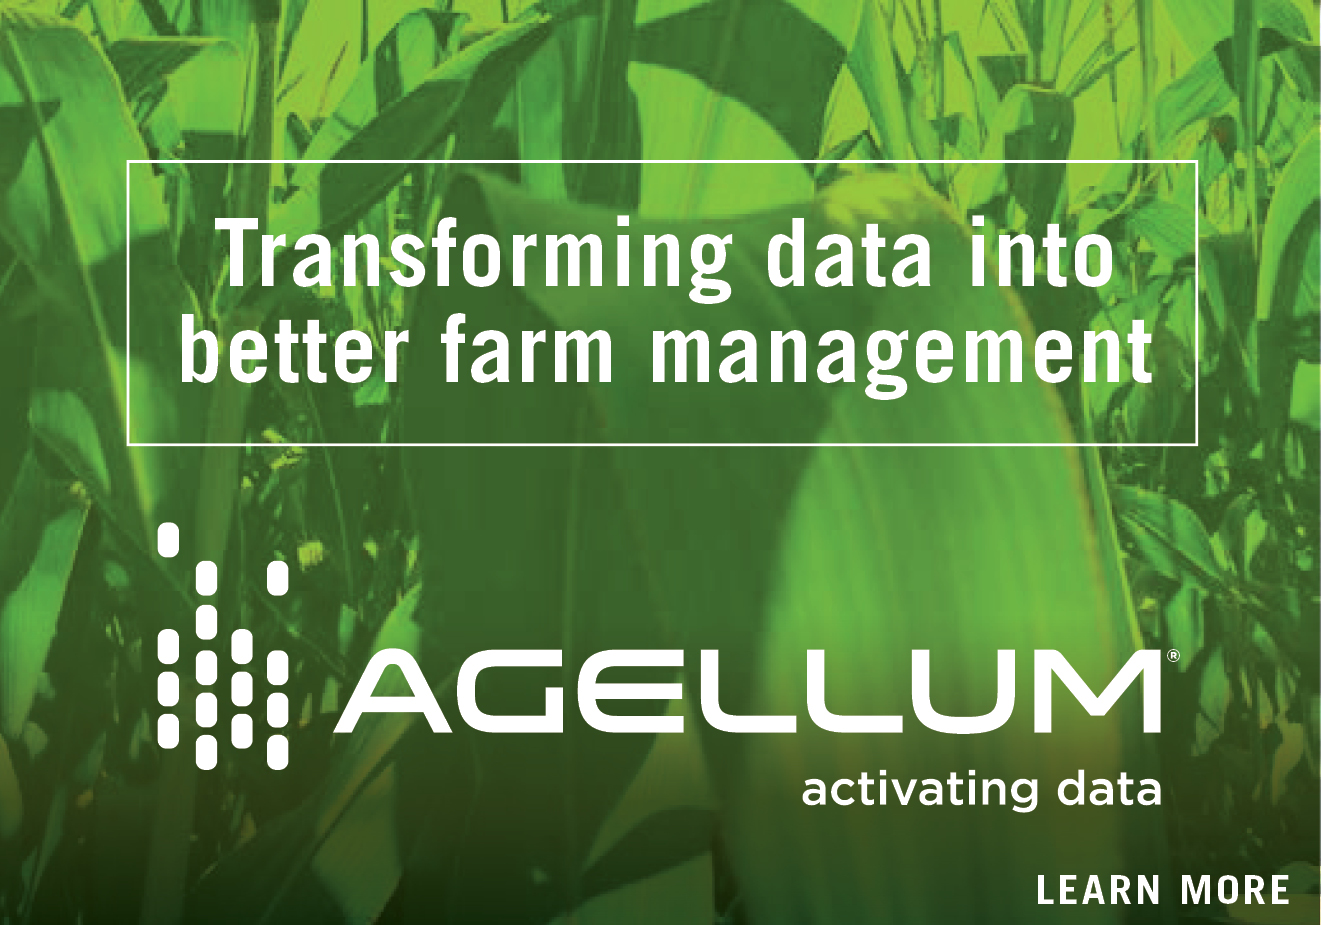 Agellum, Activating Data